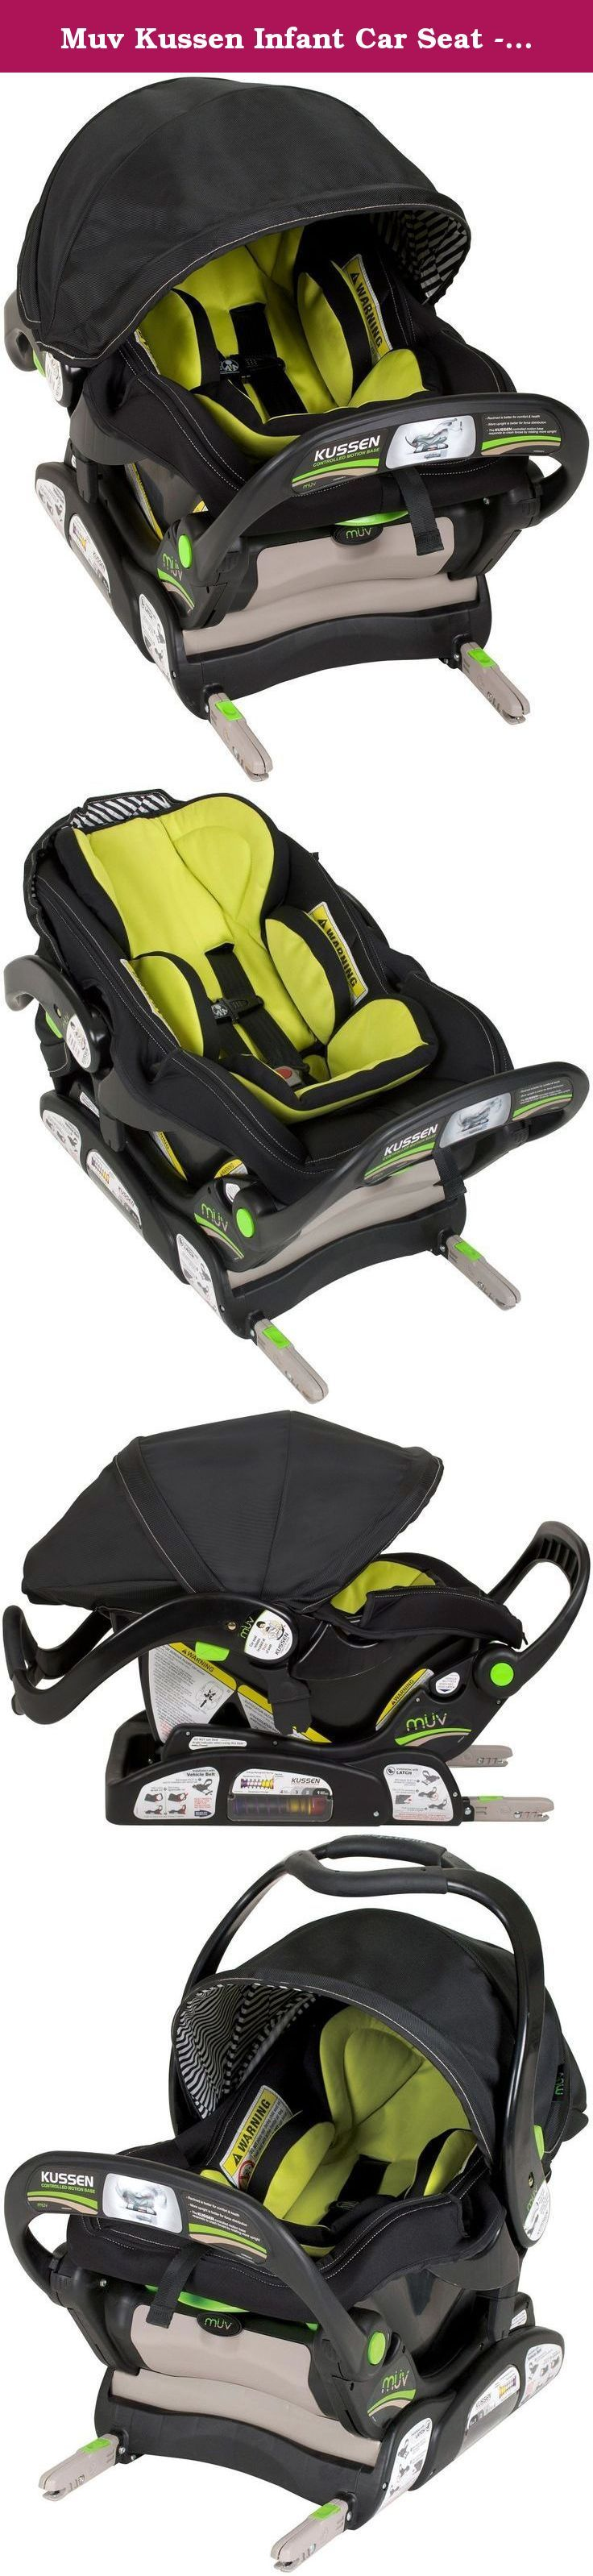 Muv Kussen Infant Car Seat - Kiwi. Muv Kussen Infant Car Seat - Kiwi Driving home wit your new baby is exciting and nerve racking at the same time. You want you baby's first trip home to be comfortable, safe, and secure. Safer than a traditional car seat... our patented controlled motion base makes KUSSEN the safest car seat available. The KUSSEN infant car seat maximizes your baby's comfort with soft textured materials, memory foam seat pad and inserts. It's safe, secure, and responds to...